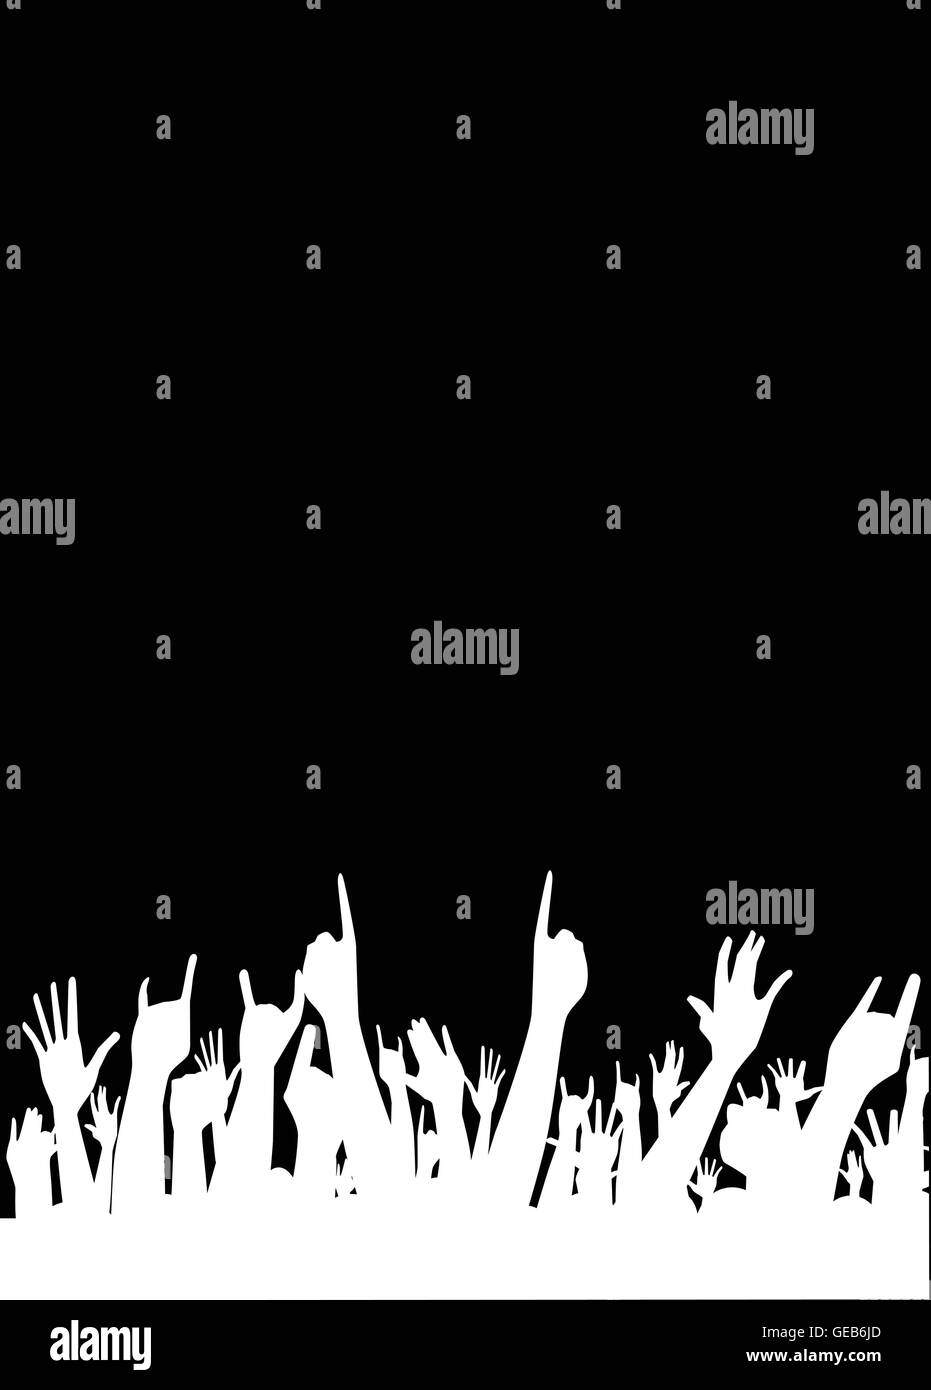 Hands raised in the air at a concert - Stock Vector